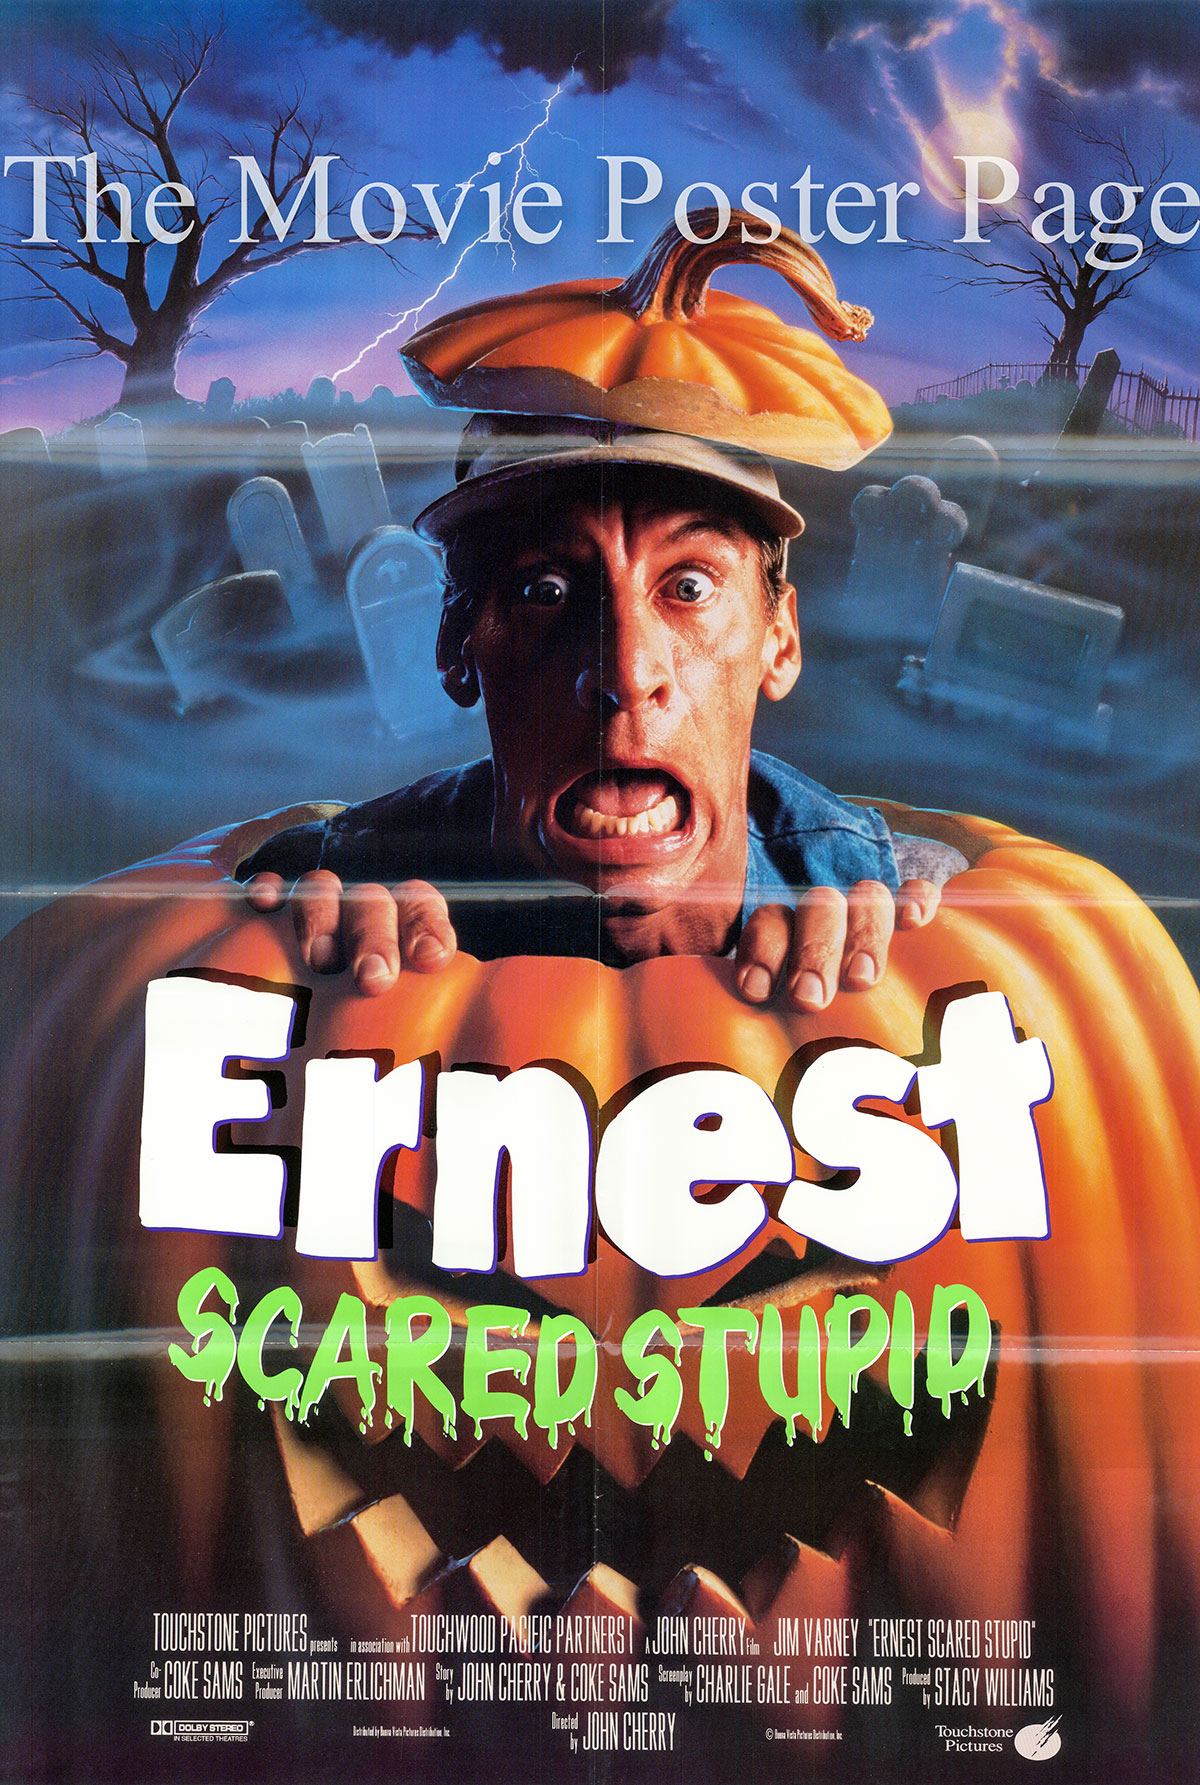 Pictured is a US one-sheet poster for the 1991 John R. Cherry III film Ernest Scared Stupid starring Jim Varney as Ernest P. Worrell.